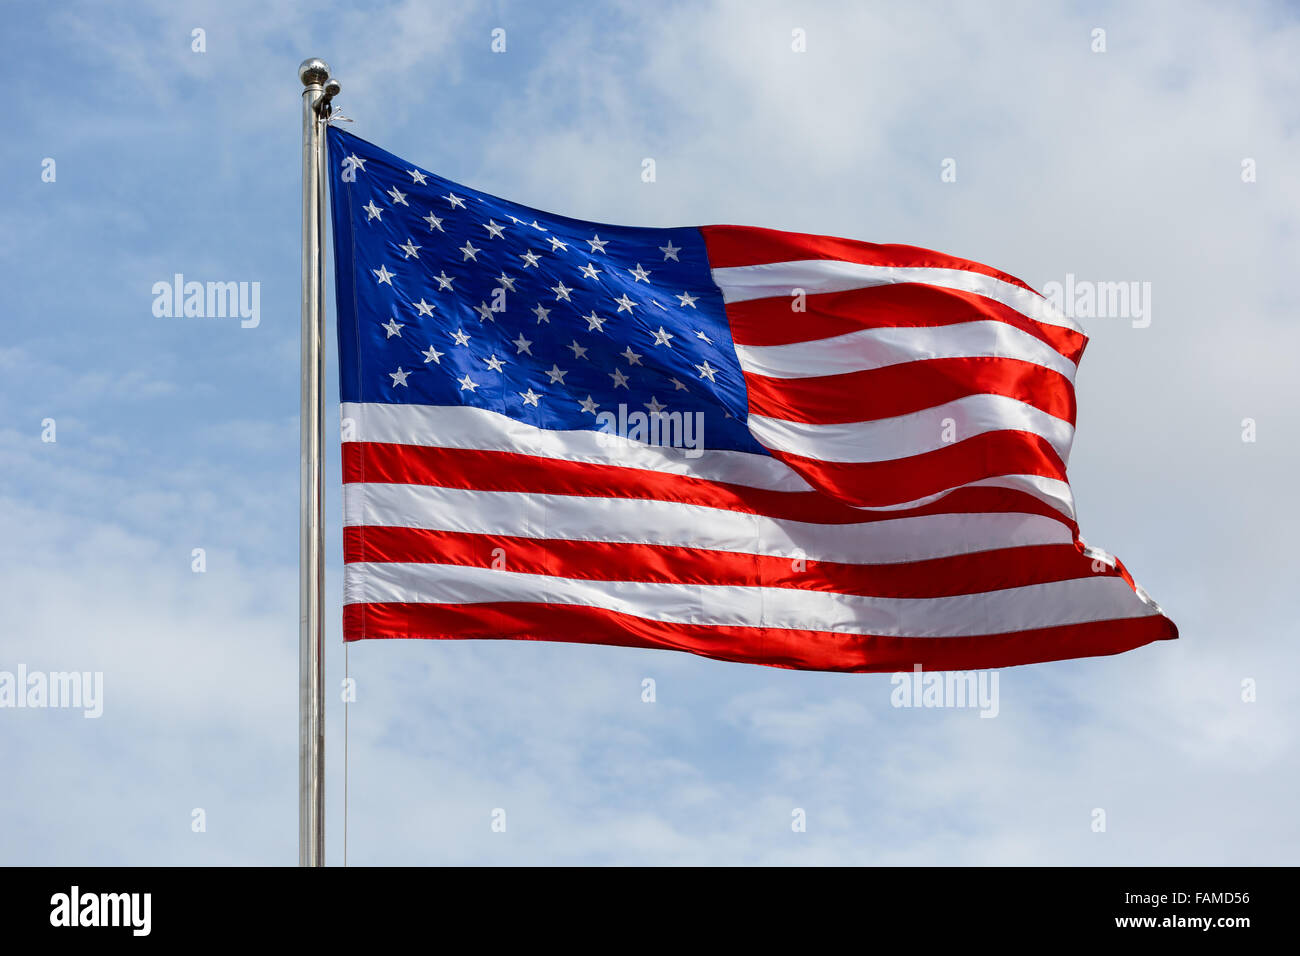 Stars and Stripes, American flag blowing in wind - Stock Image